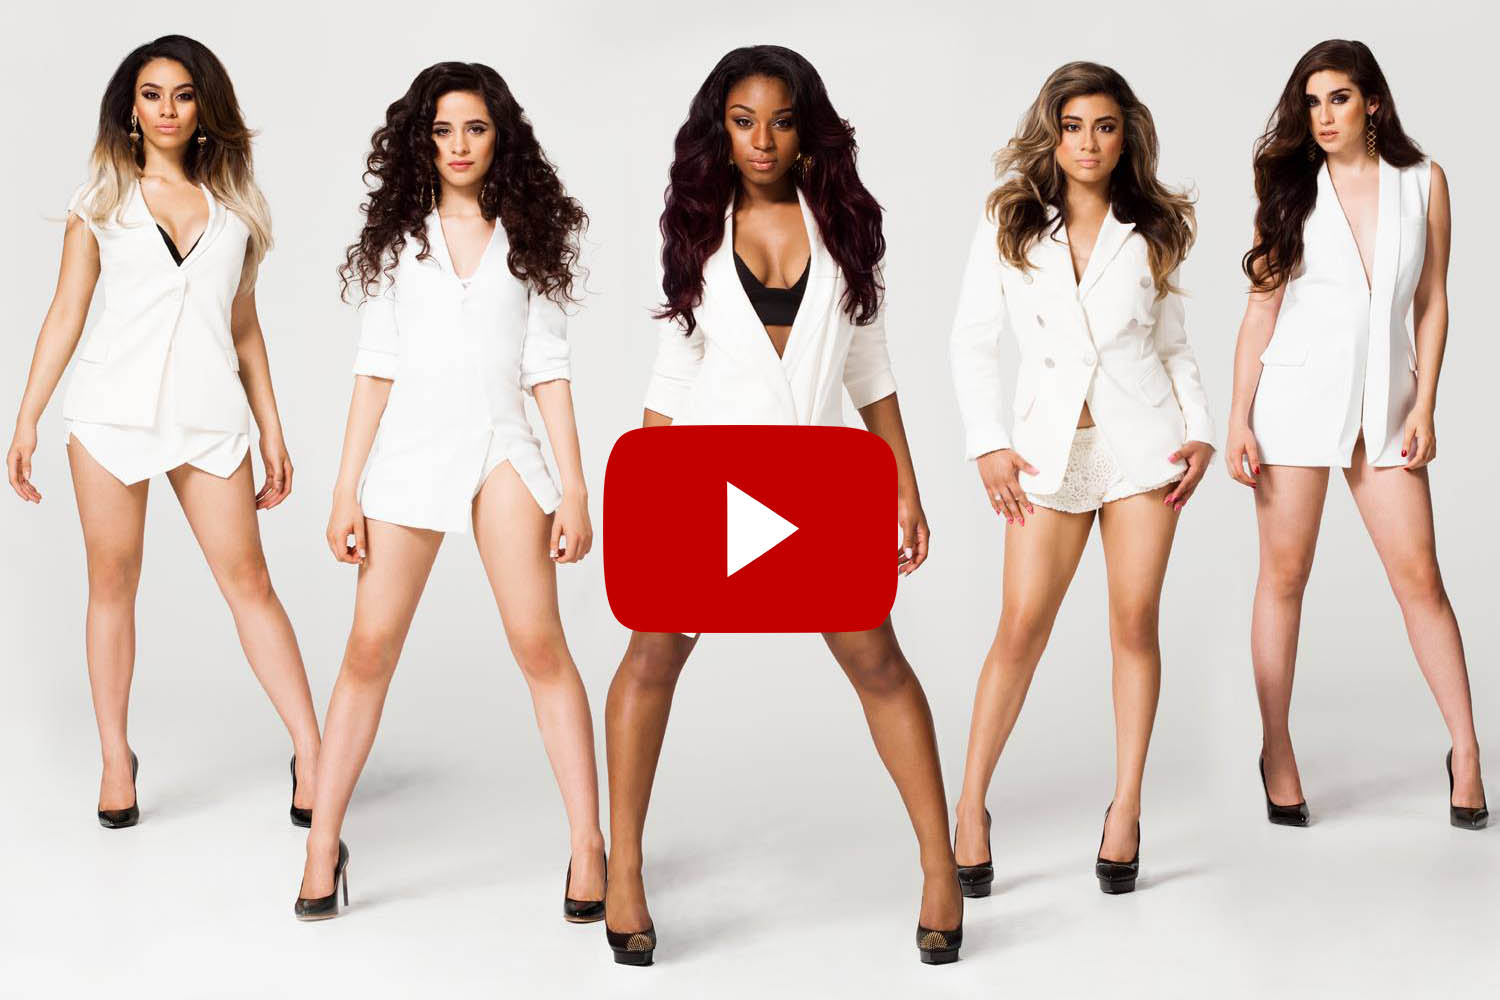 Fifth Harmony - BO$$ (Live Z100 Jingle Ball 2015) - YouTube